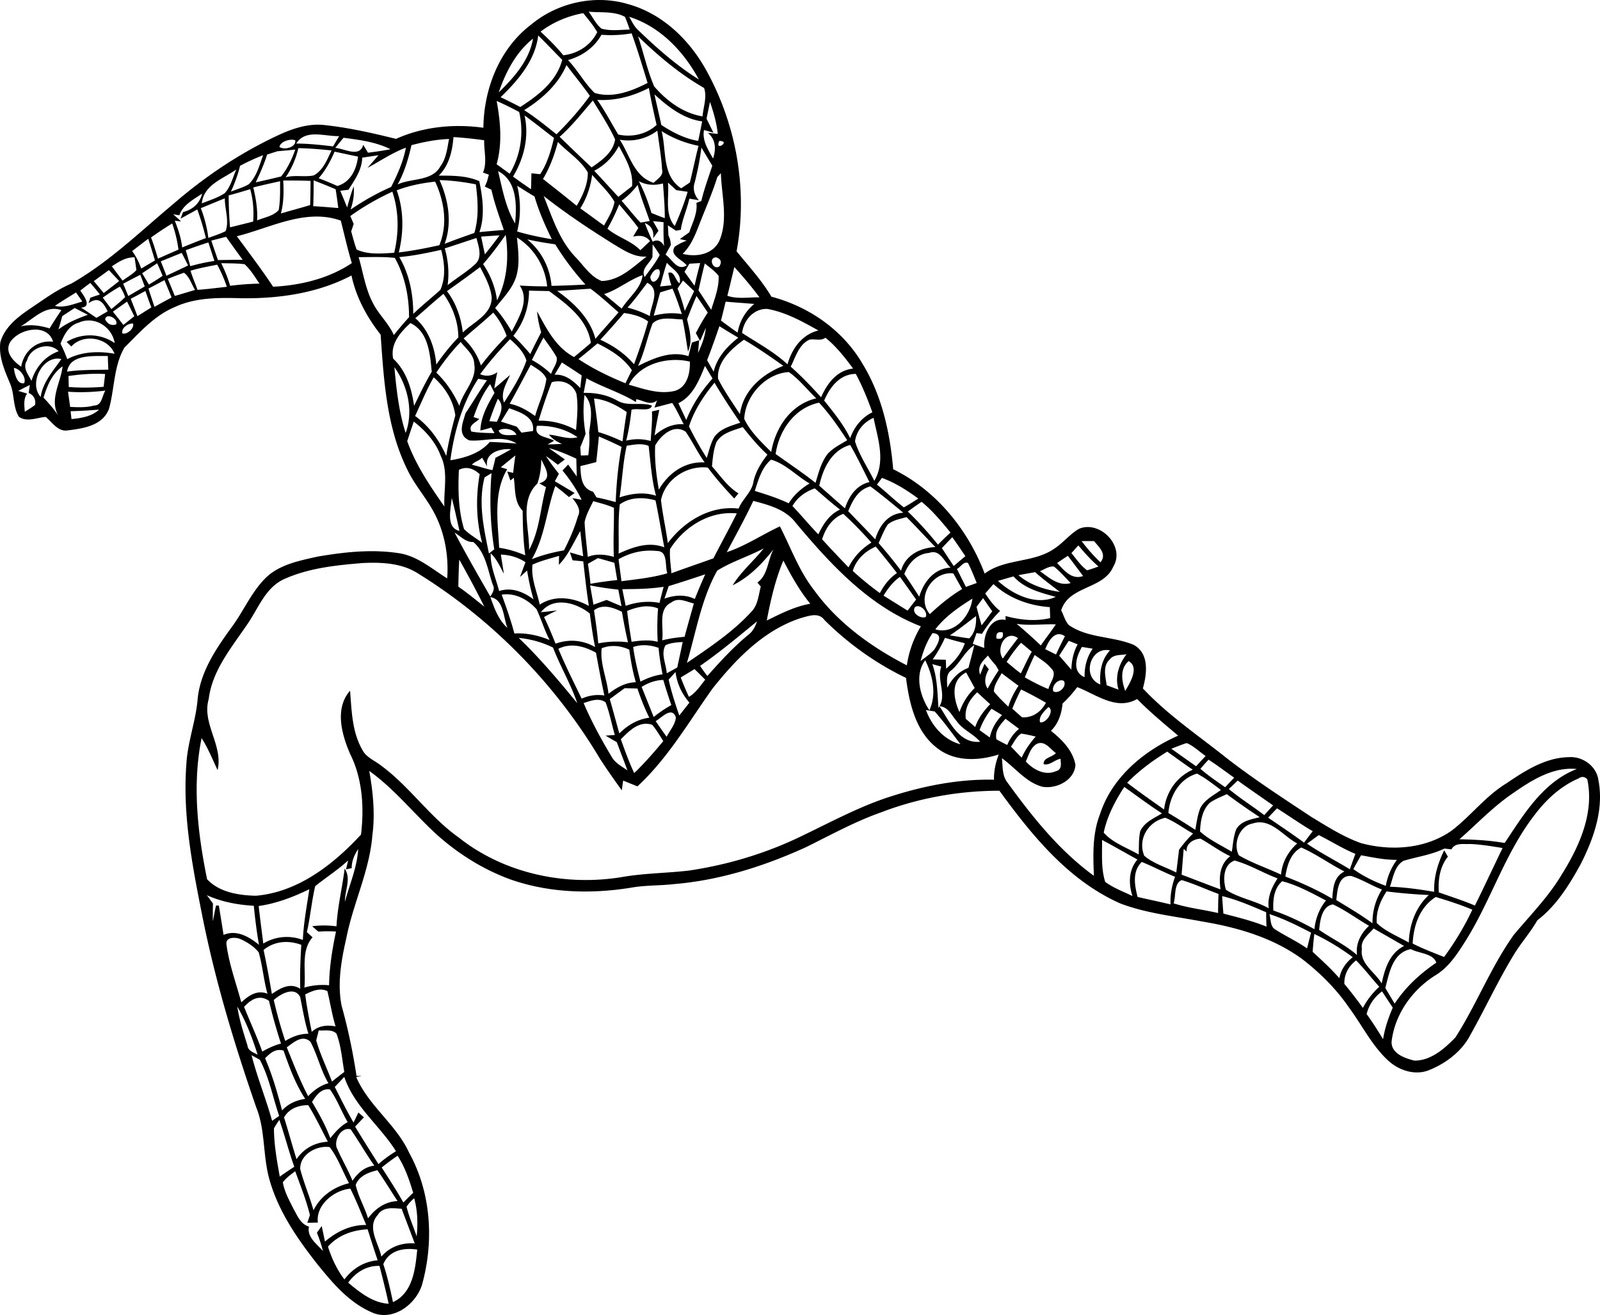 spiderman coloring pages kids printable - Children Coloring Pages